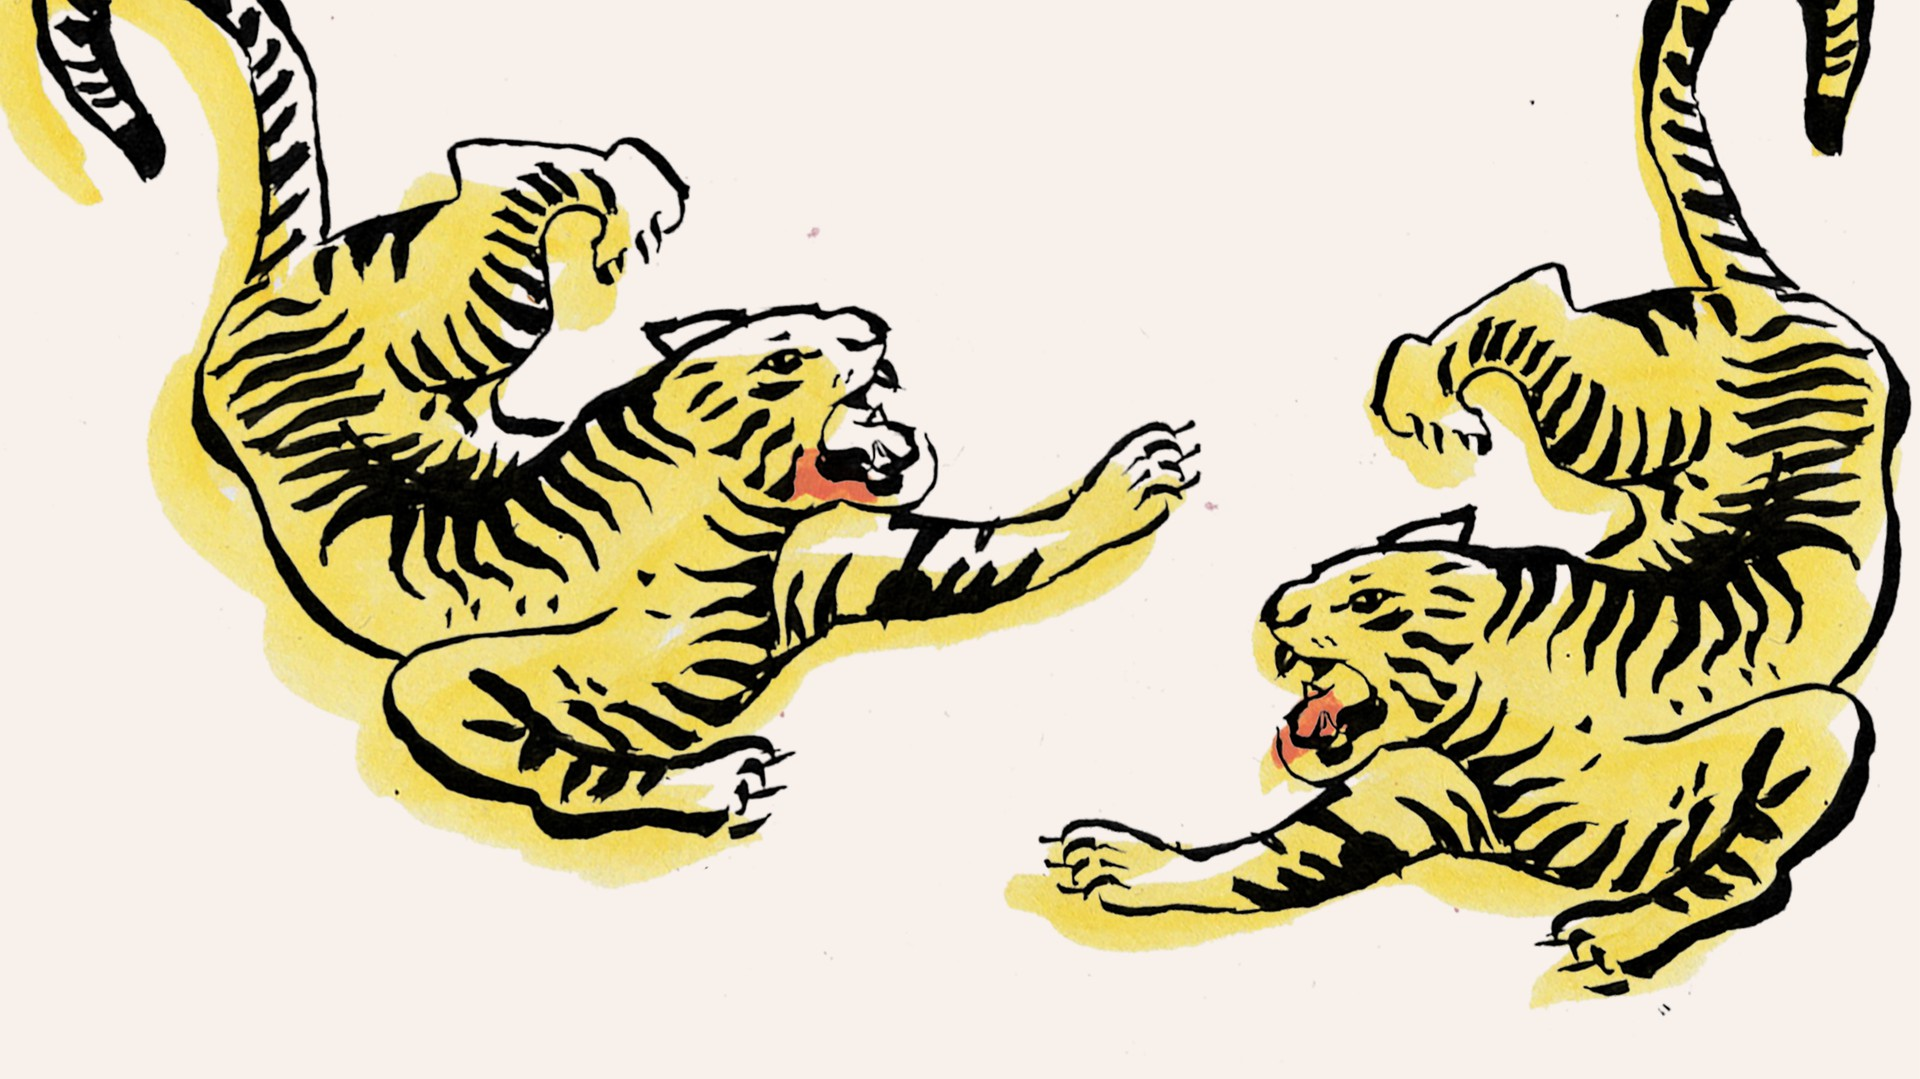 An illustration of two tigers facing each other, both roaring